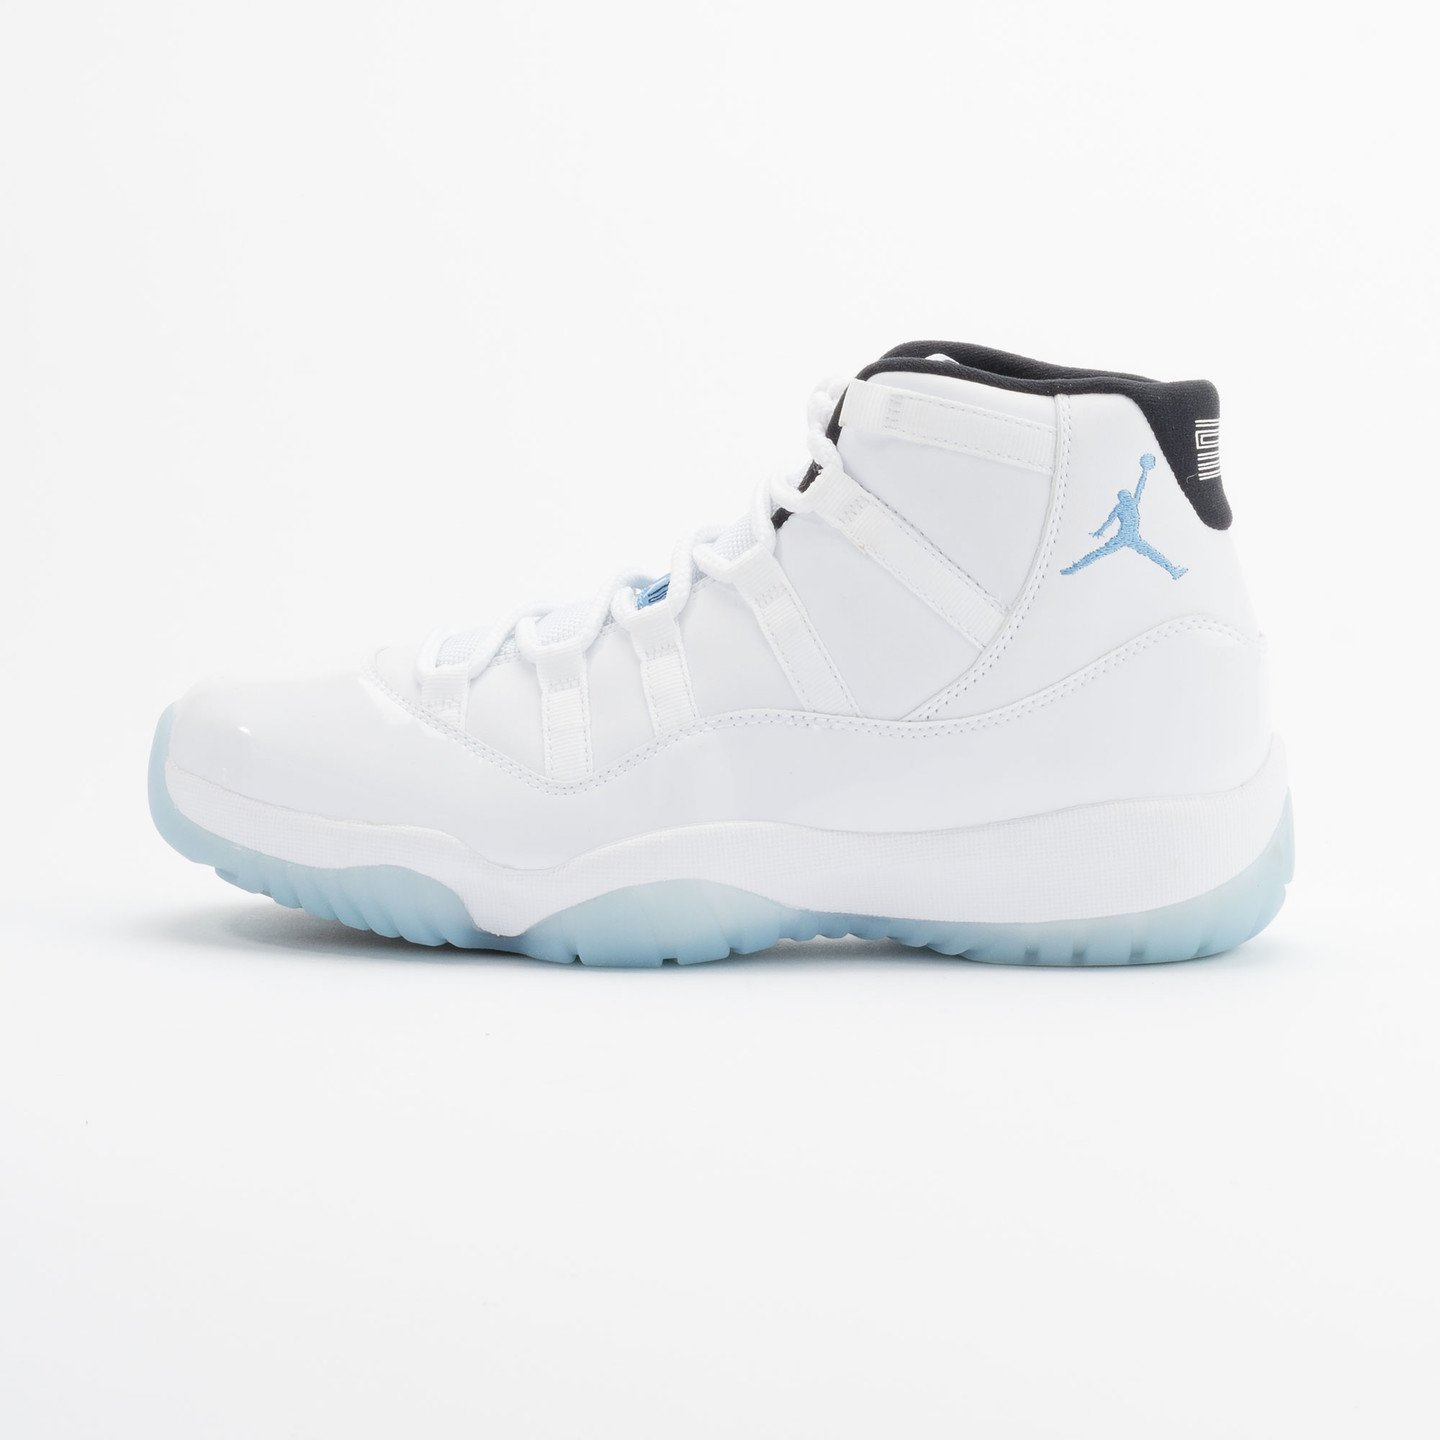 Jordan Air Jordan 11 Retro White/Legend Blue-Black 378037-117-40.5